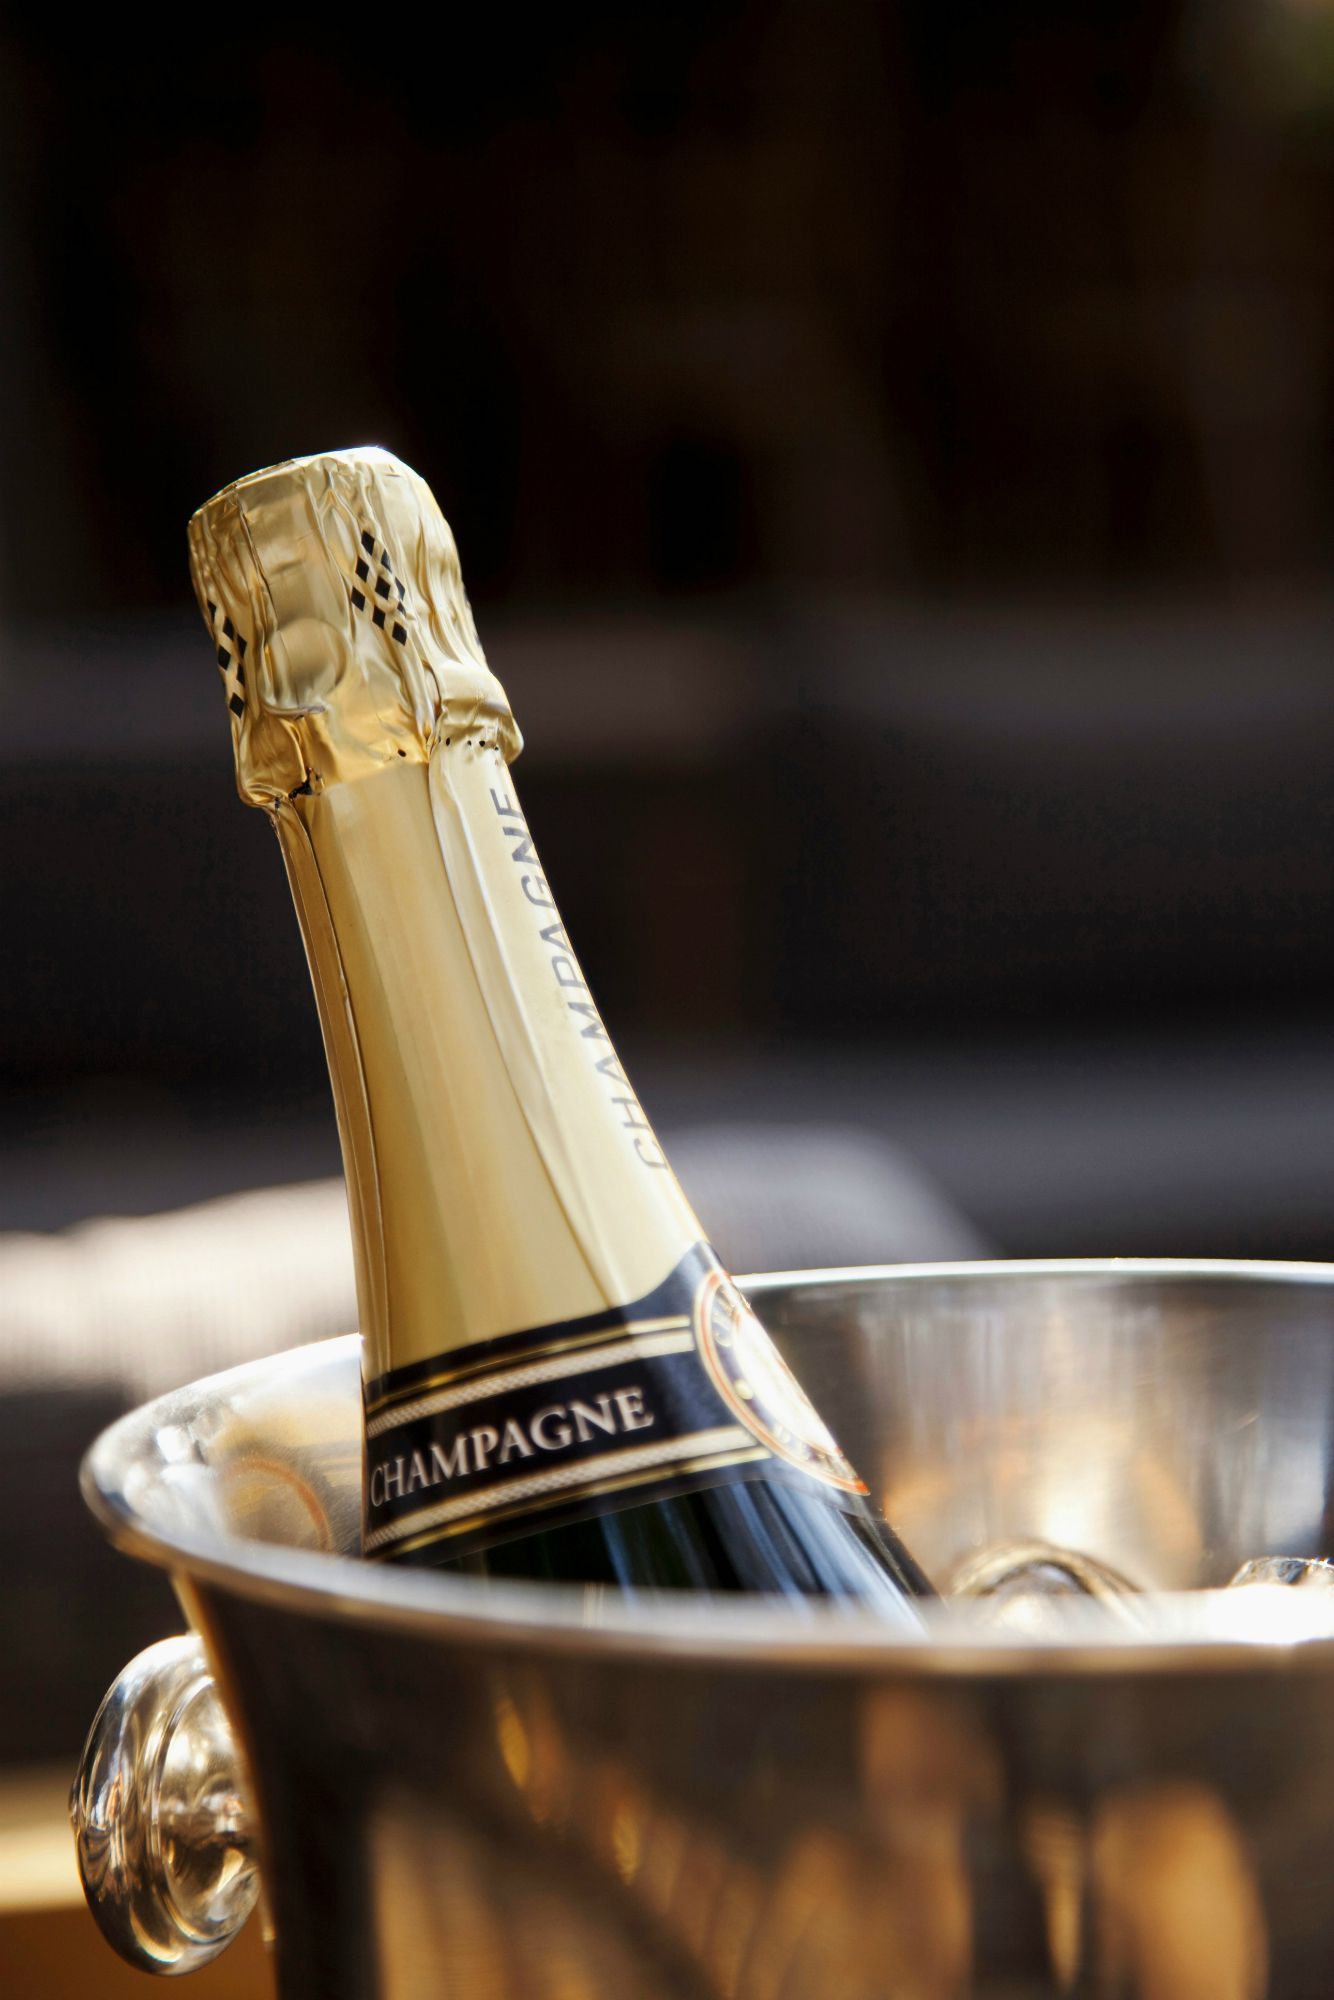 Best Cheap Champagne 10 Champagnes Under 30